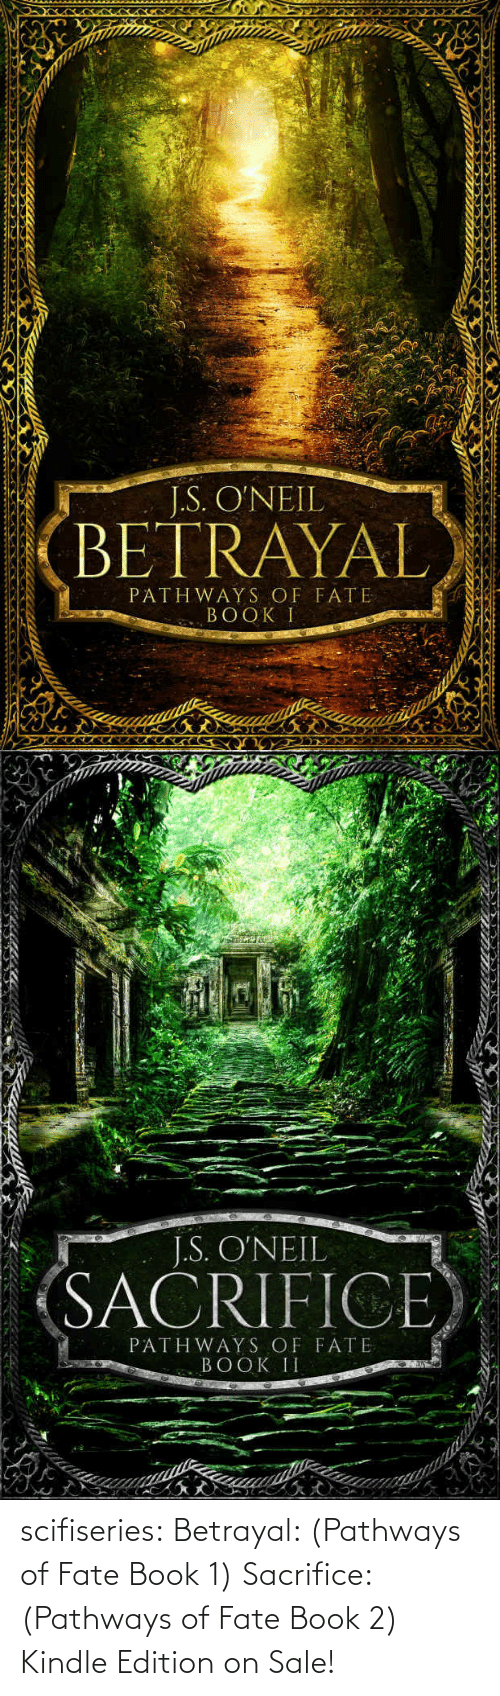 Fate: J.S. O'NEIL  BETRAYAL  PATHWAYS OF FATE  BOOK I   J.S. O'NEIL  SAČRIFICE  PATHWAYS OF FATE  BOOK II scifiseries: Betrayal: (Pathways of Fate Book 1) Sacrifice: (Pathways of Fate Book 2) Kindle Edition on Sale!